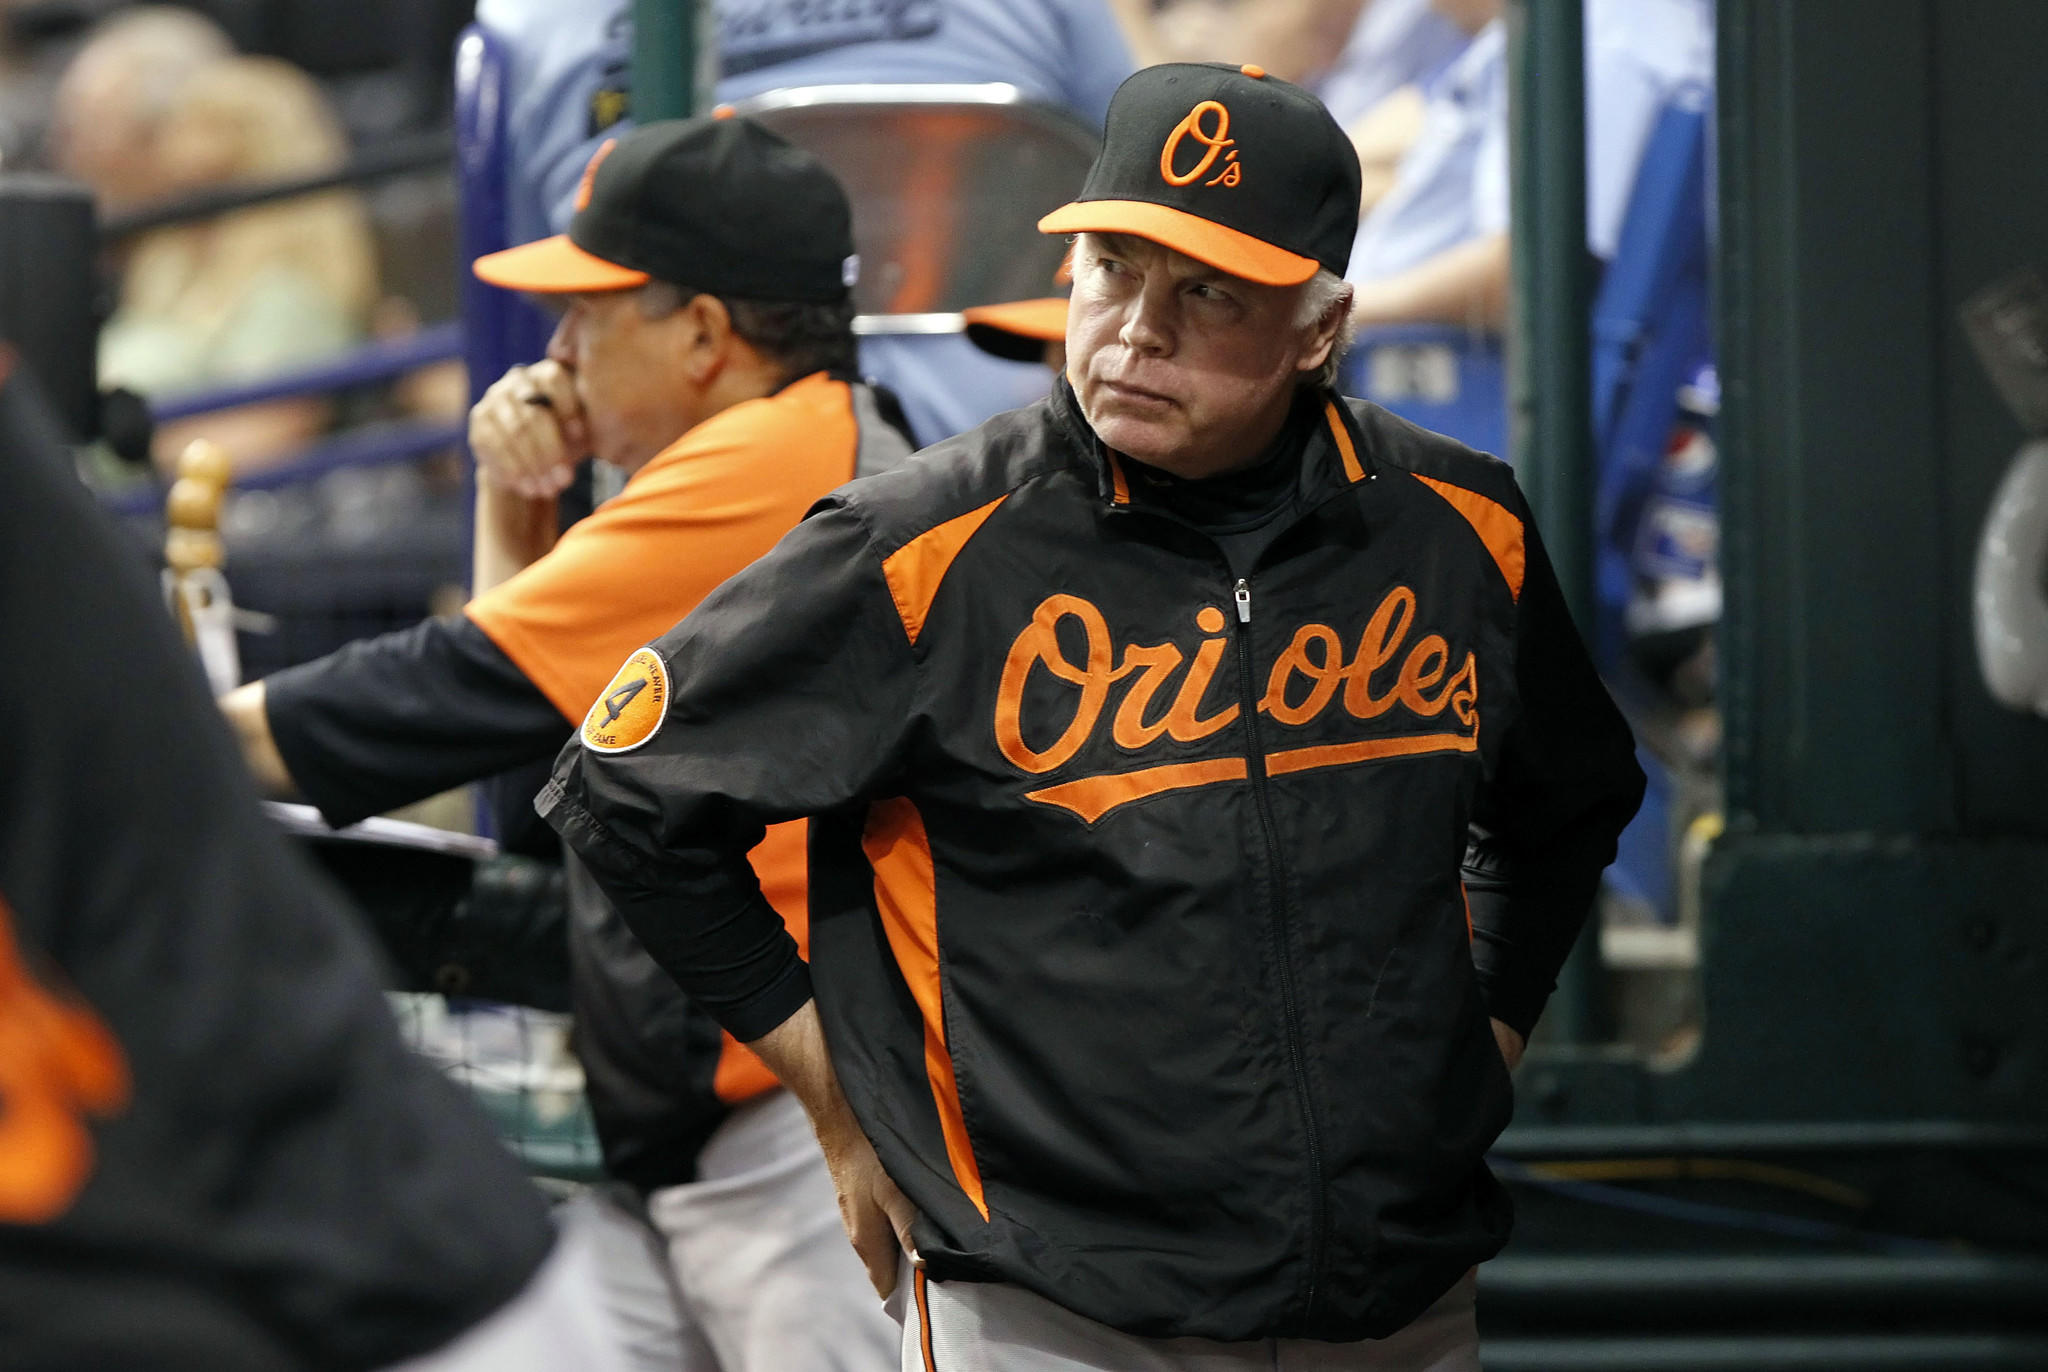 Orioles manager Buck Showalter, shown in the dugout during a game against Tampa Bay Rays last September, hasn't gotten much help for the Orioles' roster this offseason.